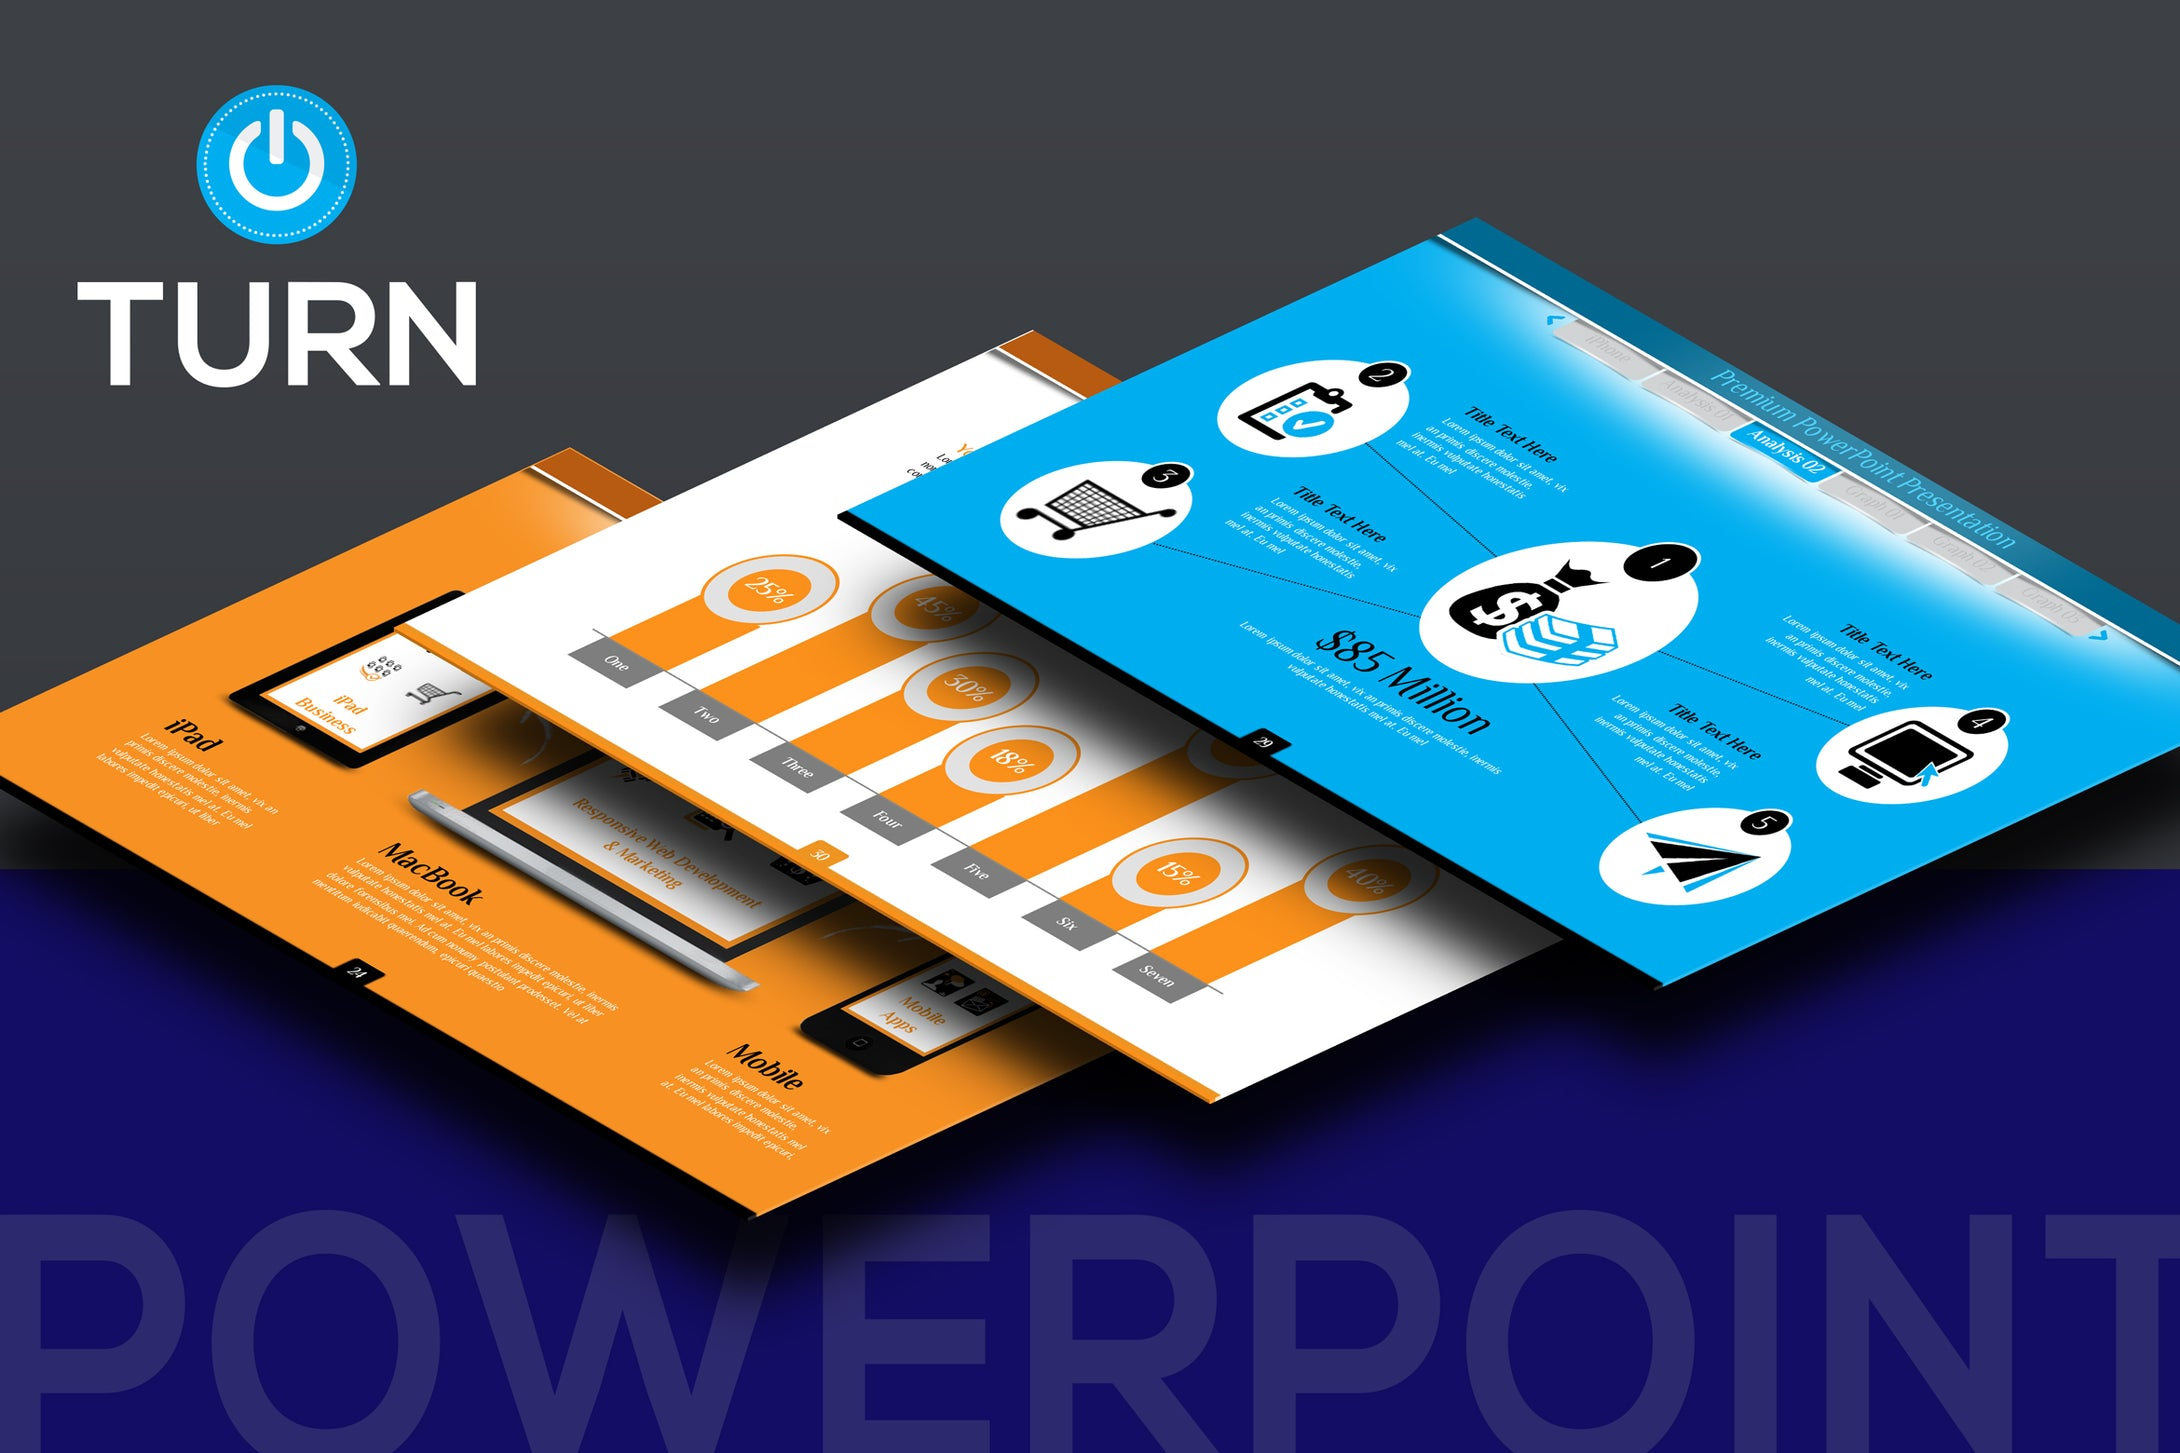 Powerpoint presentation template templatesstudio powerpoint presentation template toneelgroepblik Image collections